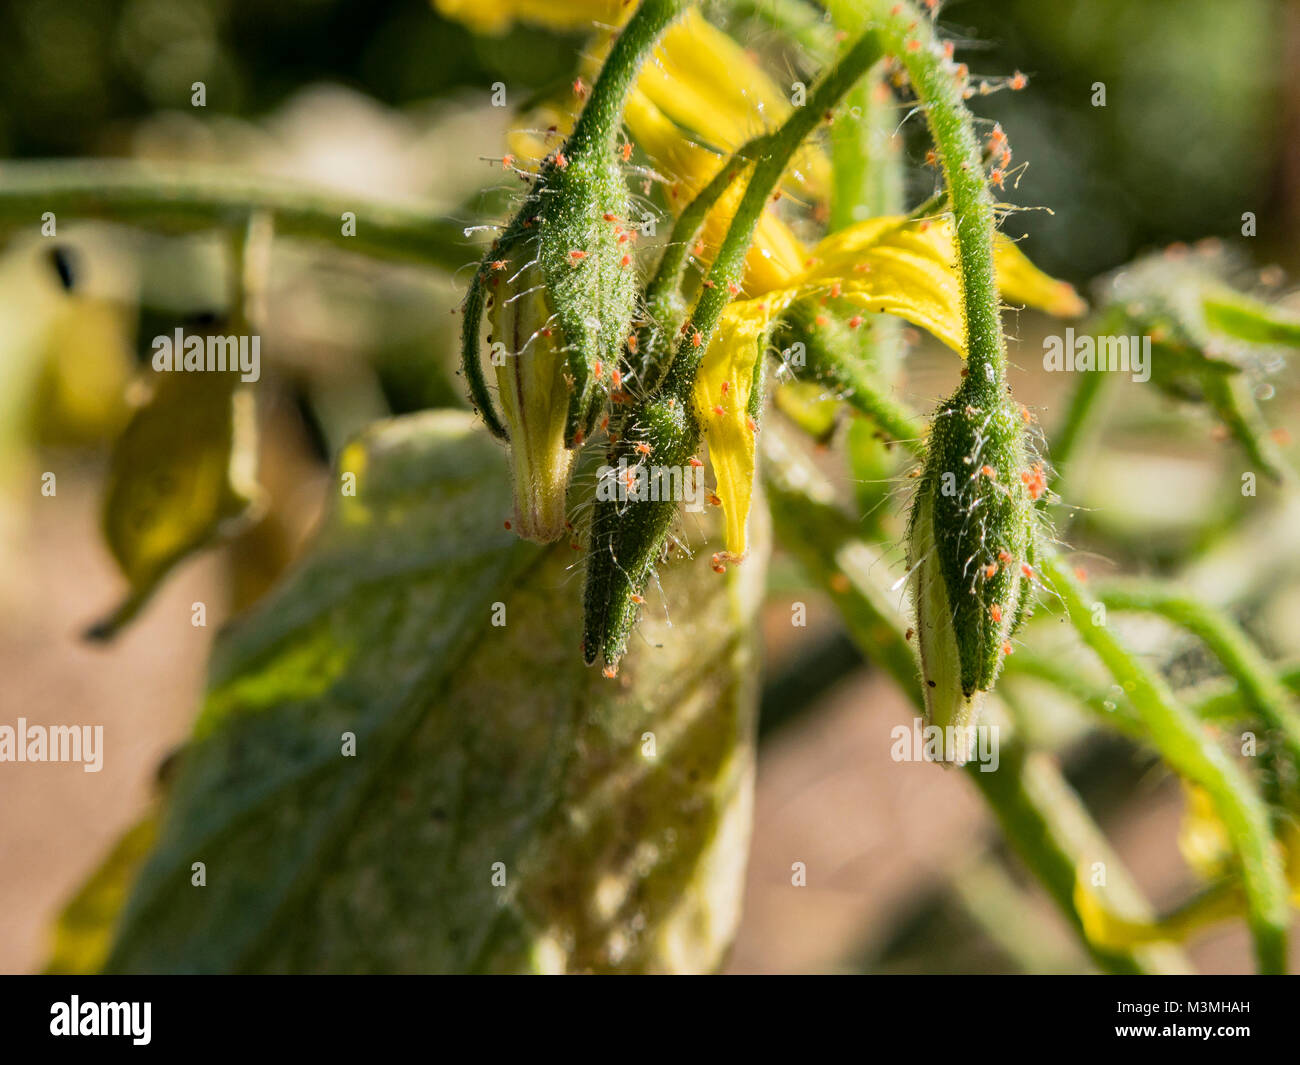 how to kill pests on plants